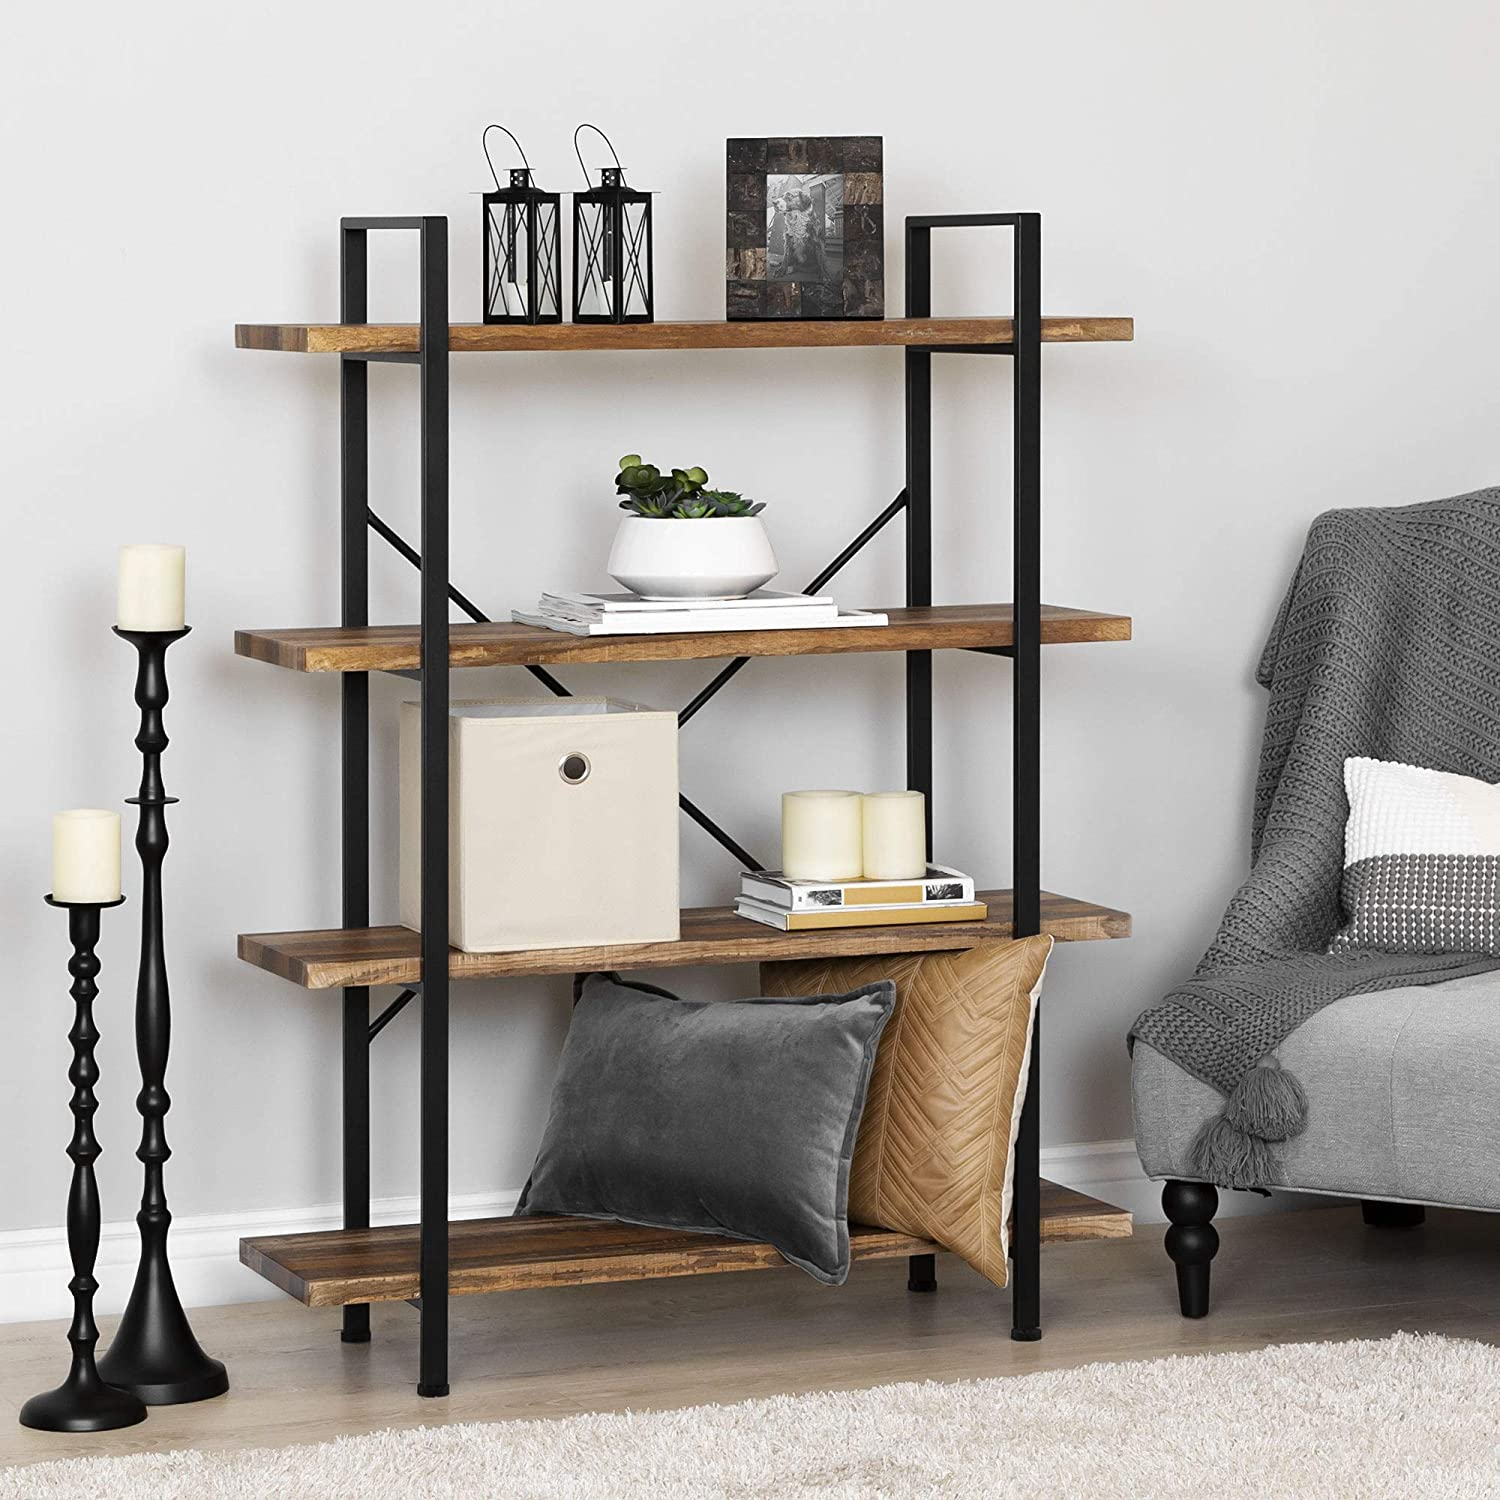 Best Choice Products 4-Shelf Industrial Open Bookshelf Organizer Furniture for Living Room, Office w Wood Shelves, Metal Frame – Brown Black